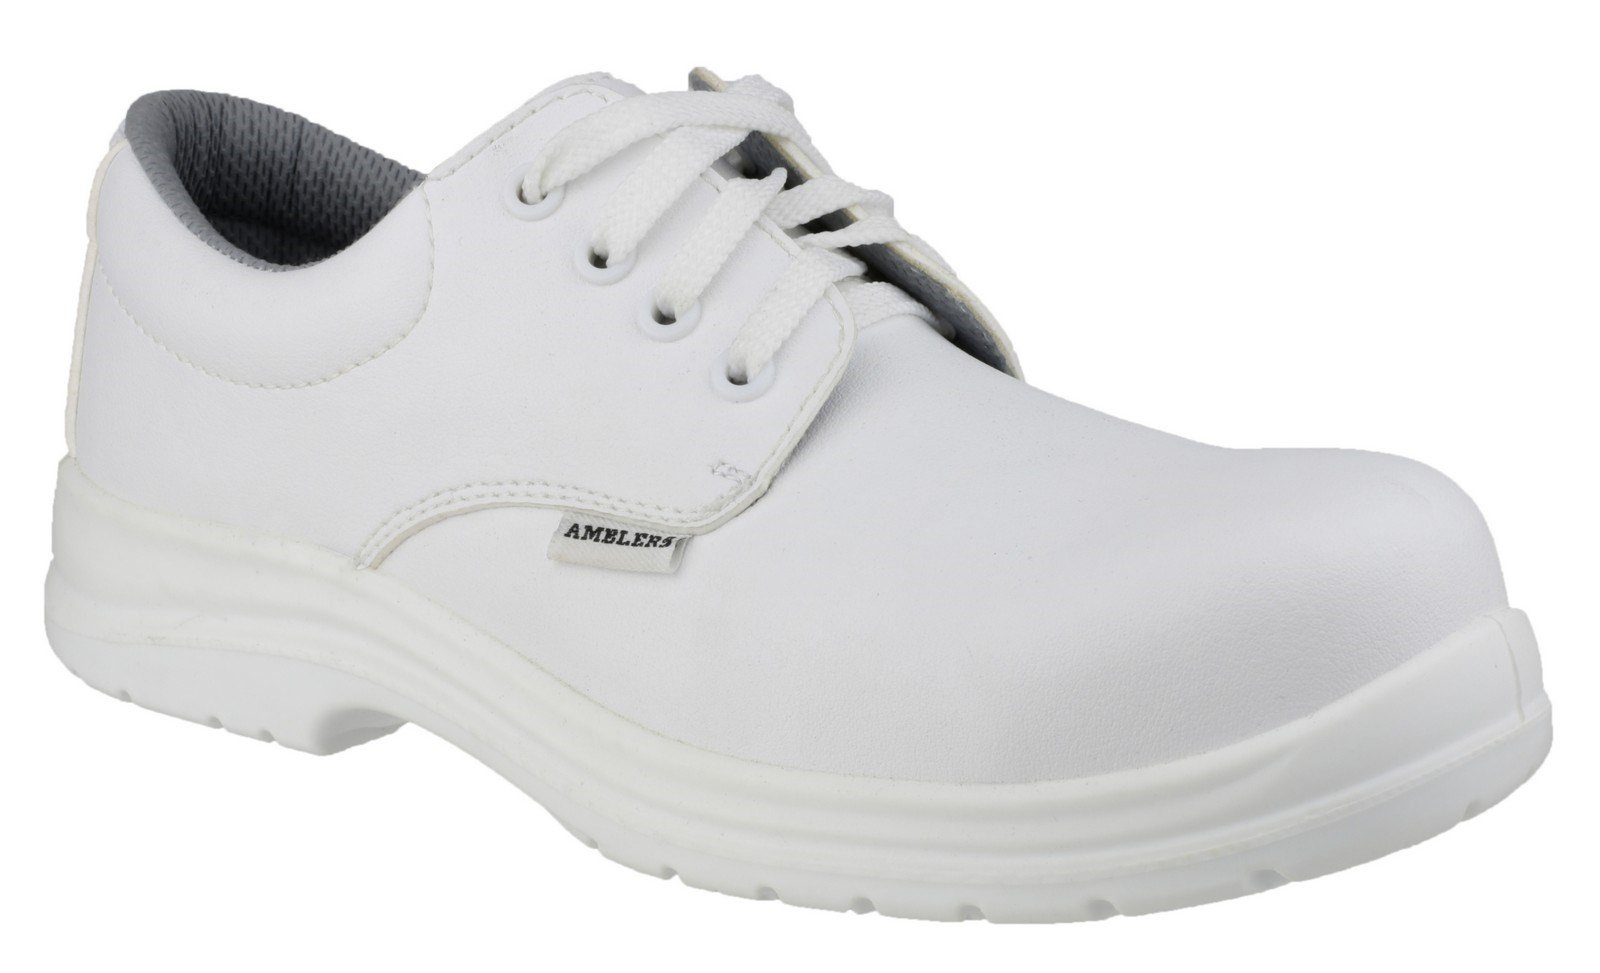 Amblers Unisex Safety Metal-Free Water-Resistant Lace up Shoe White 21893 - White 3